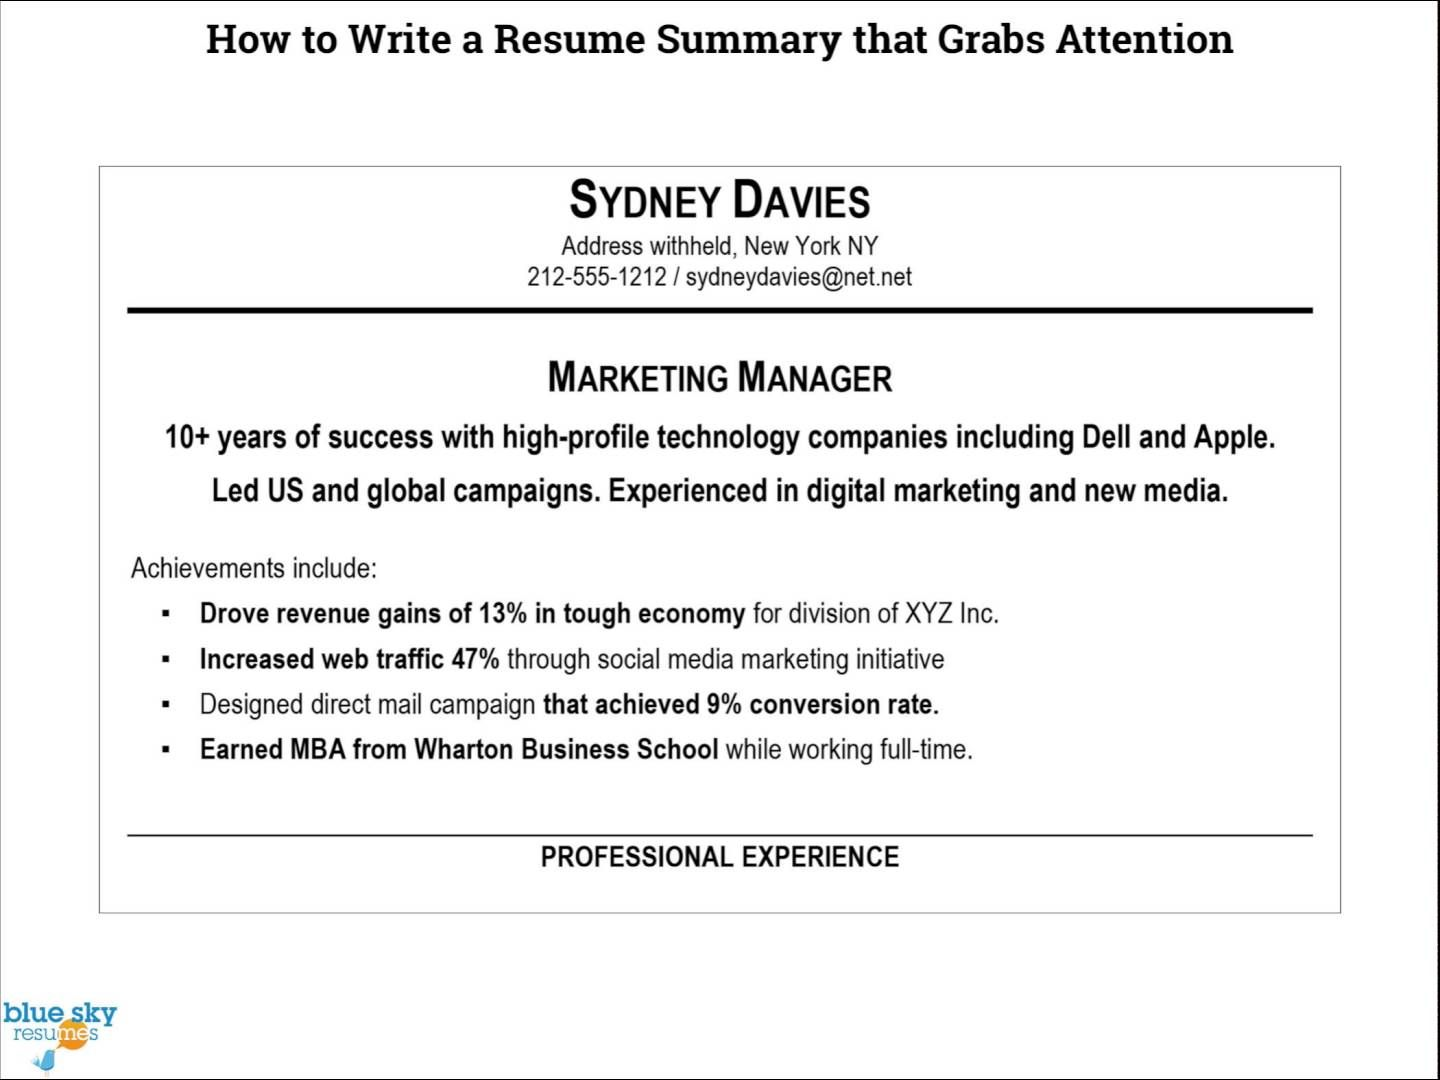 How To Write A Resume Summary With Images Resume Summary